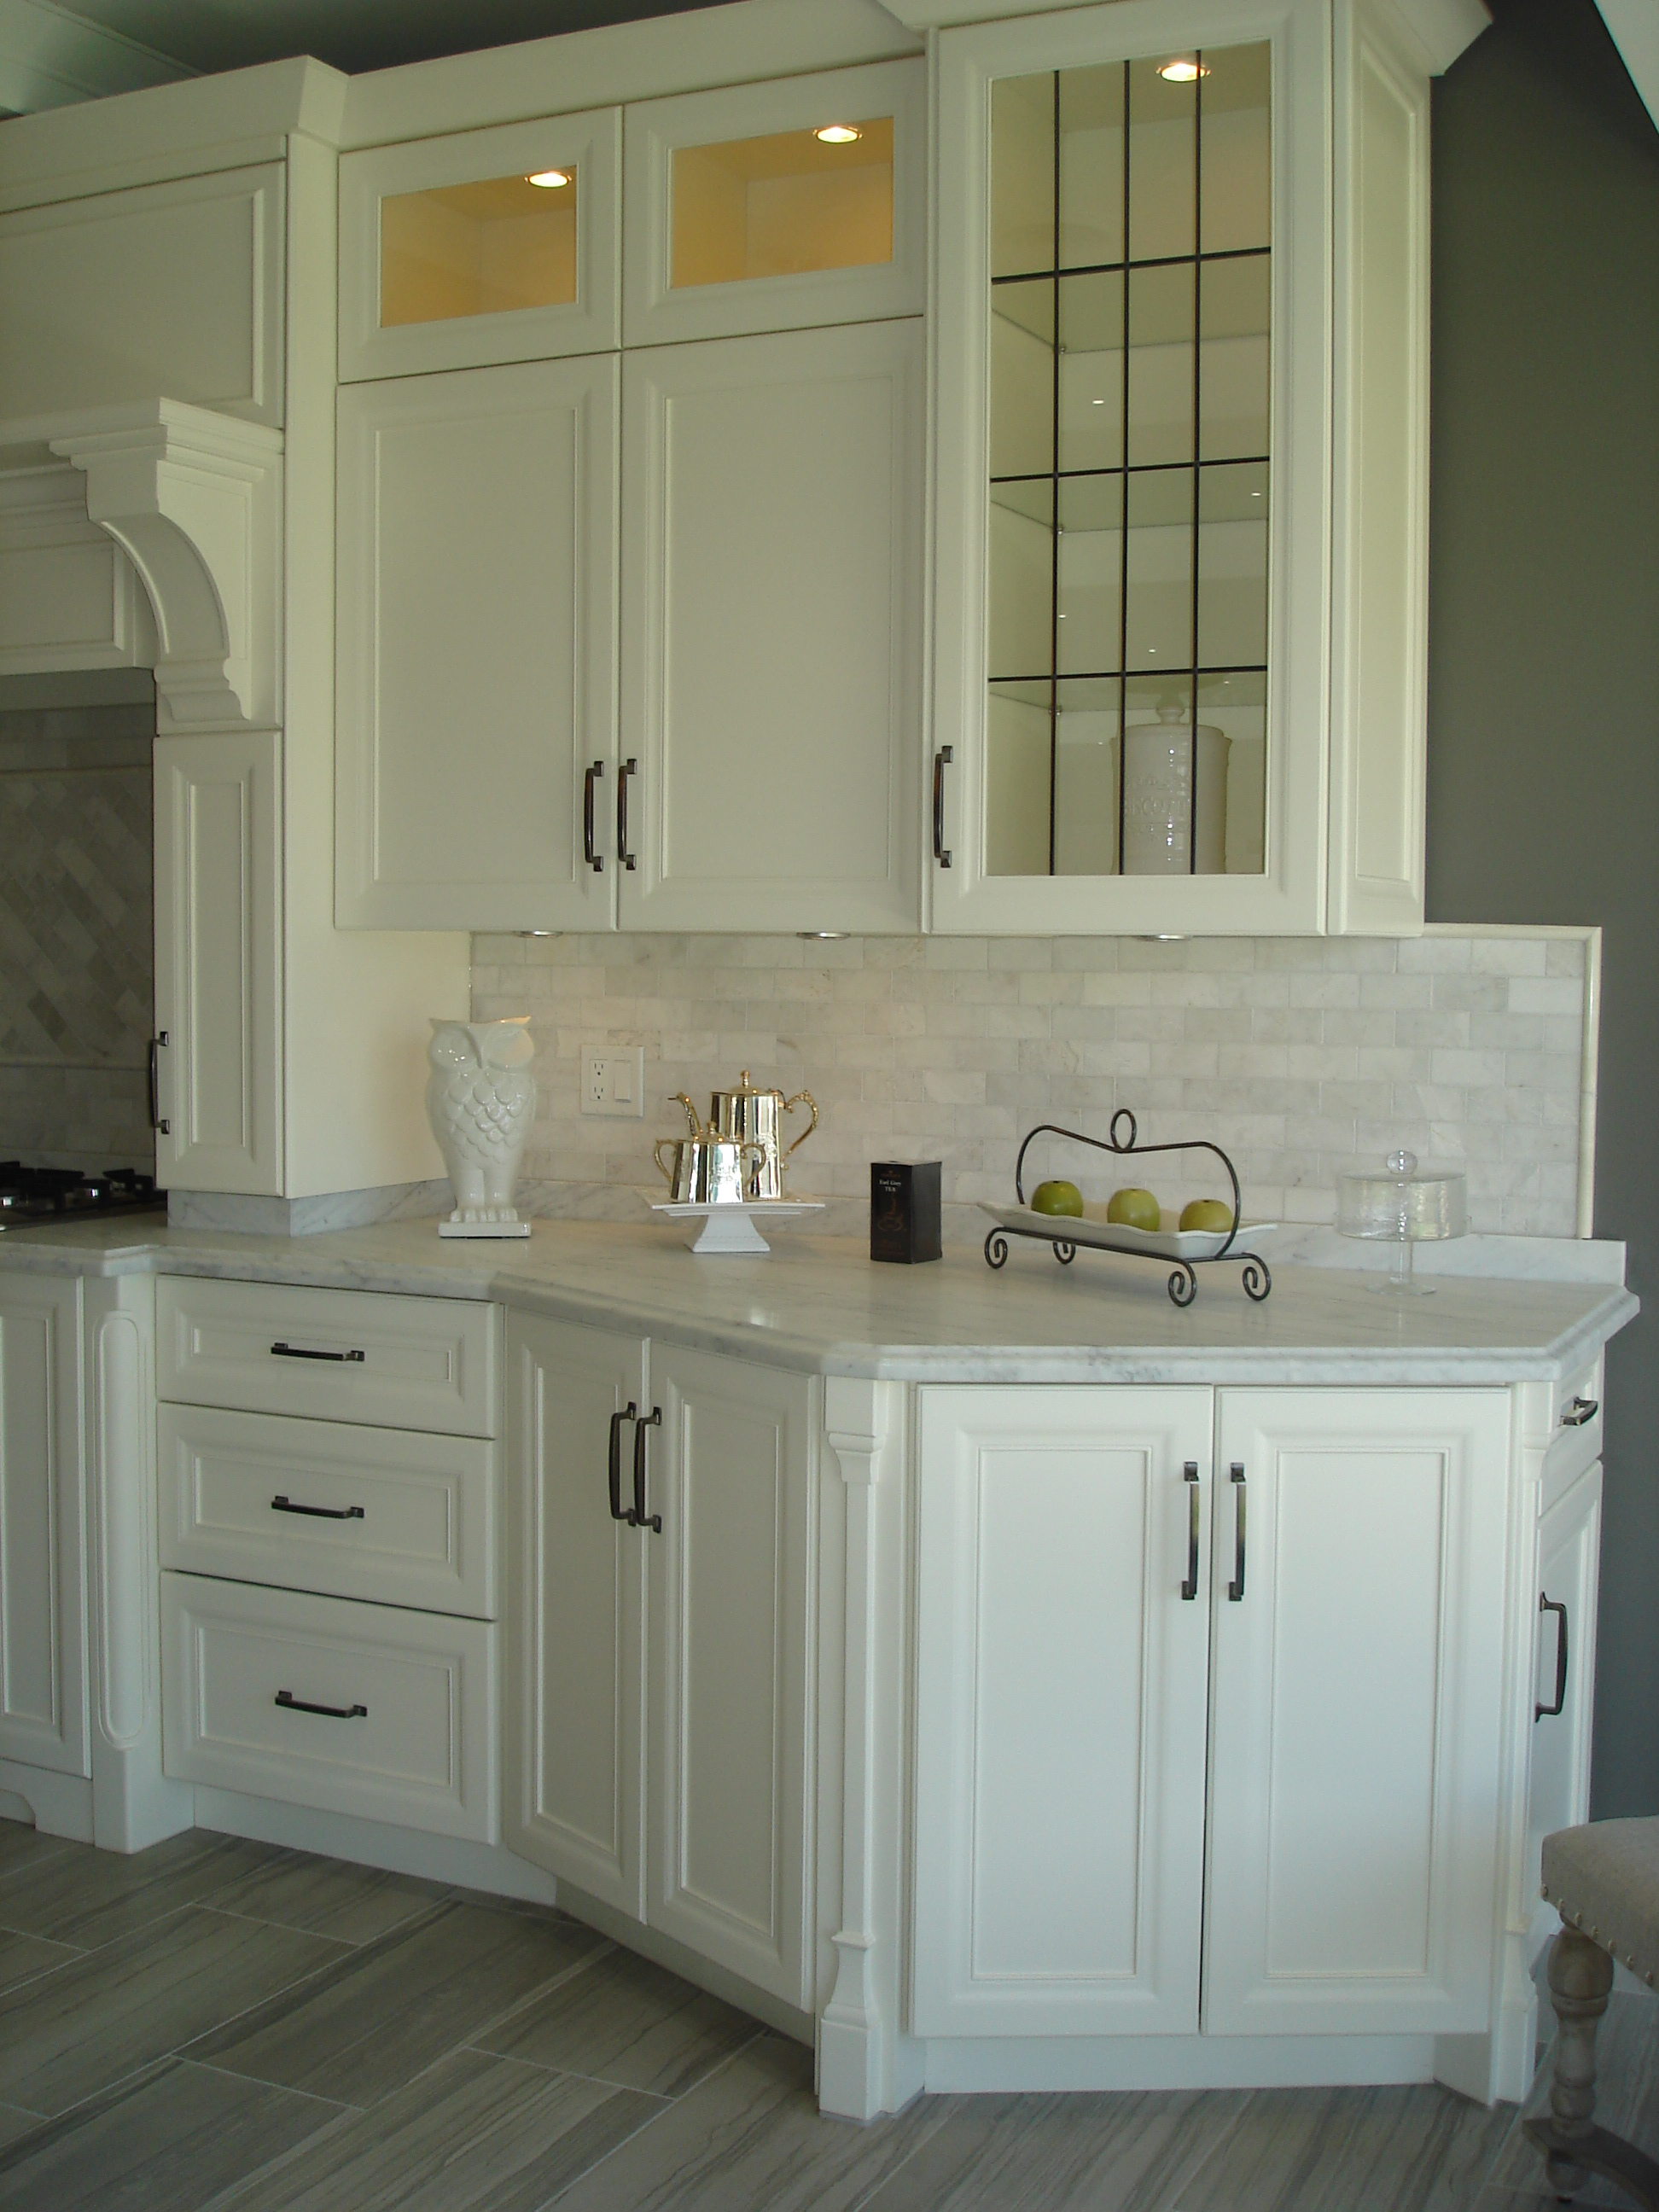 Custom Kitchen Cabinets Quality Handcrafted Kitchen Cabinetry Kitchen Renovations Bathroom